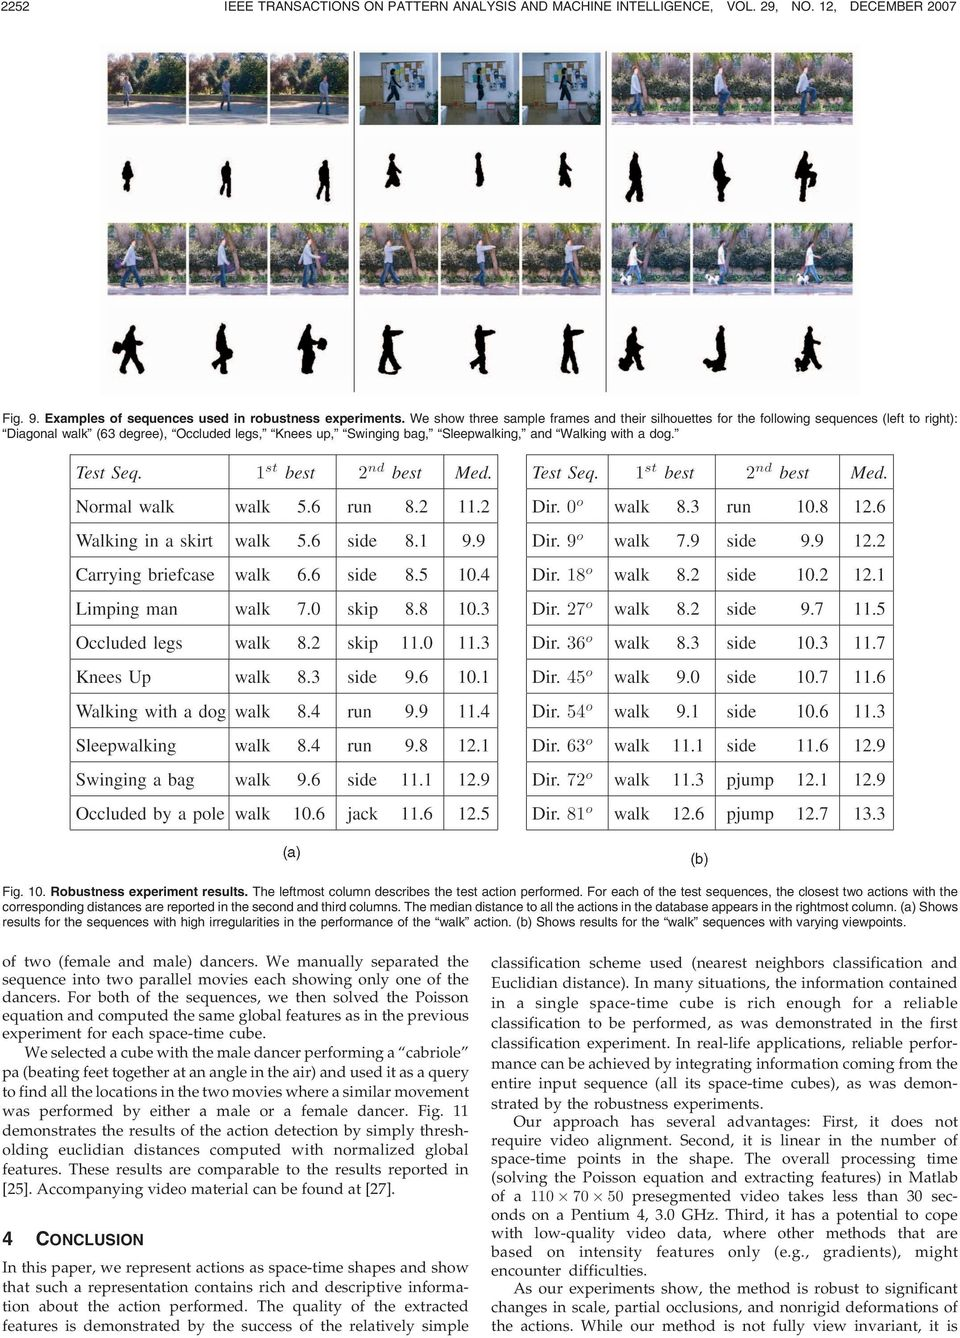 Fig. 10. Robustness experiment results. The leftmost column describes the test action performed.